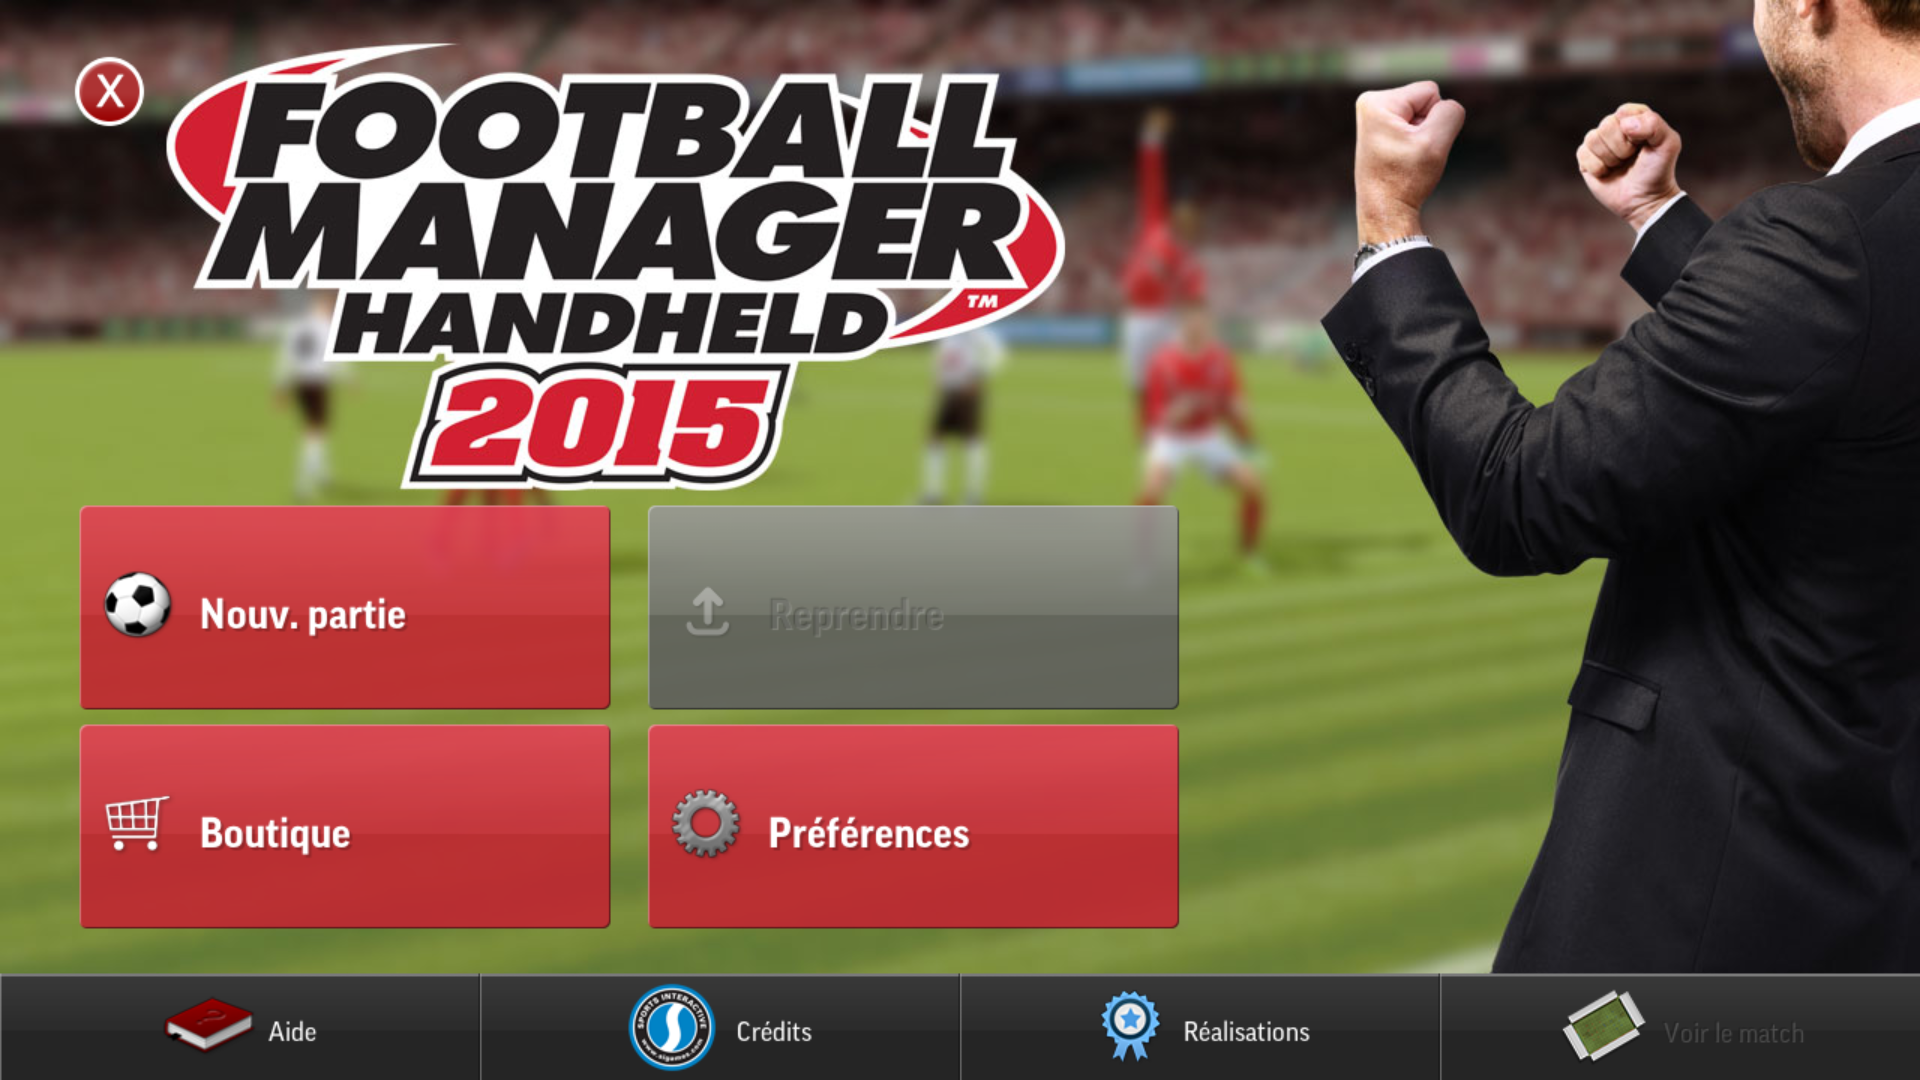 Football Manager Handheld 2015-1